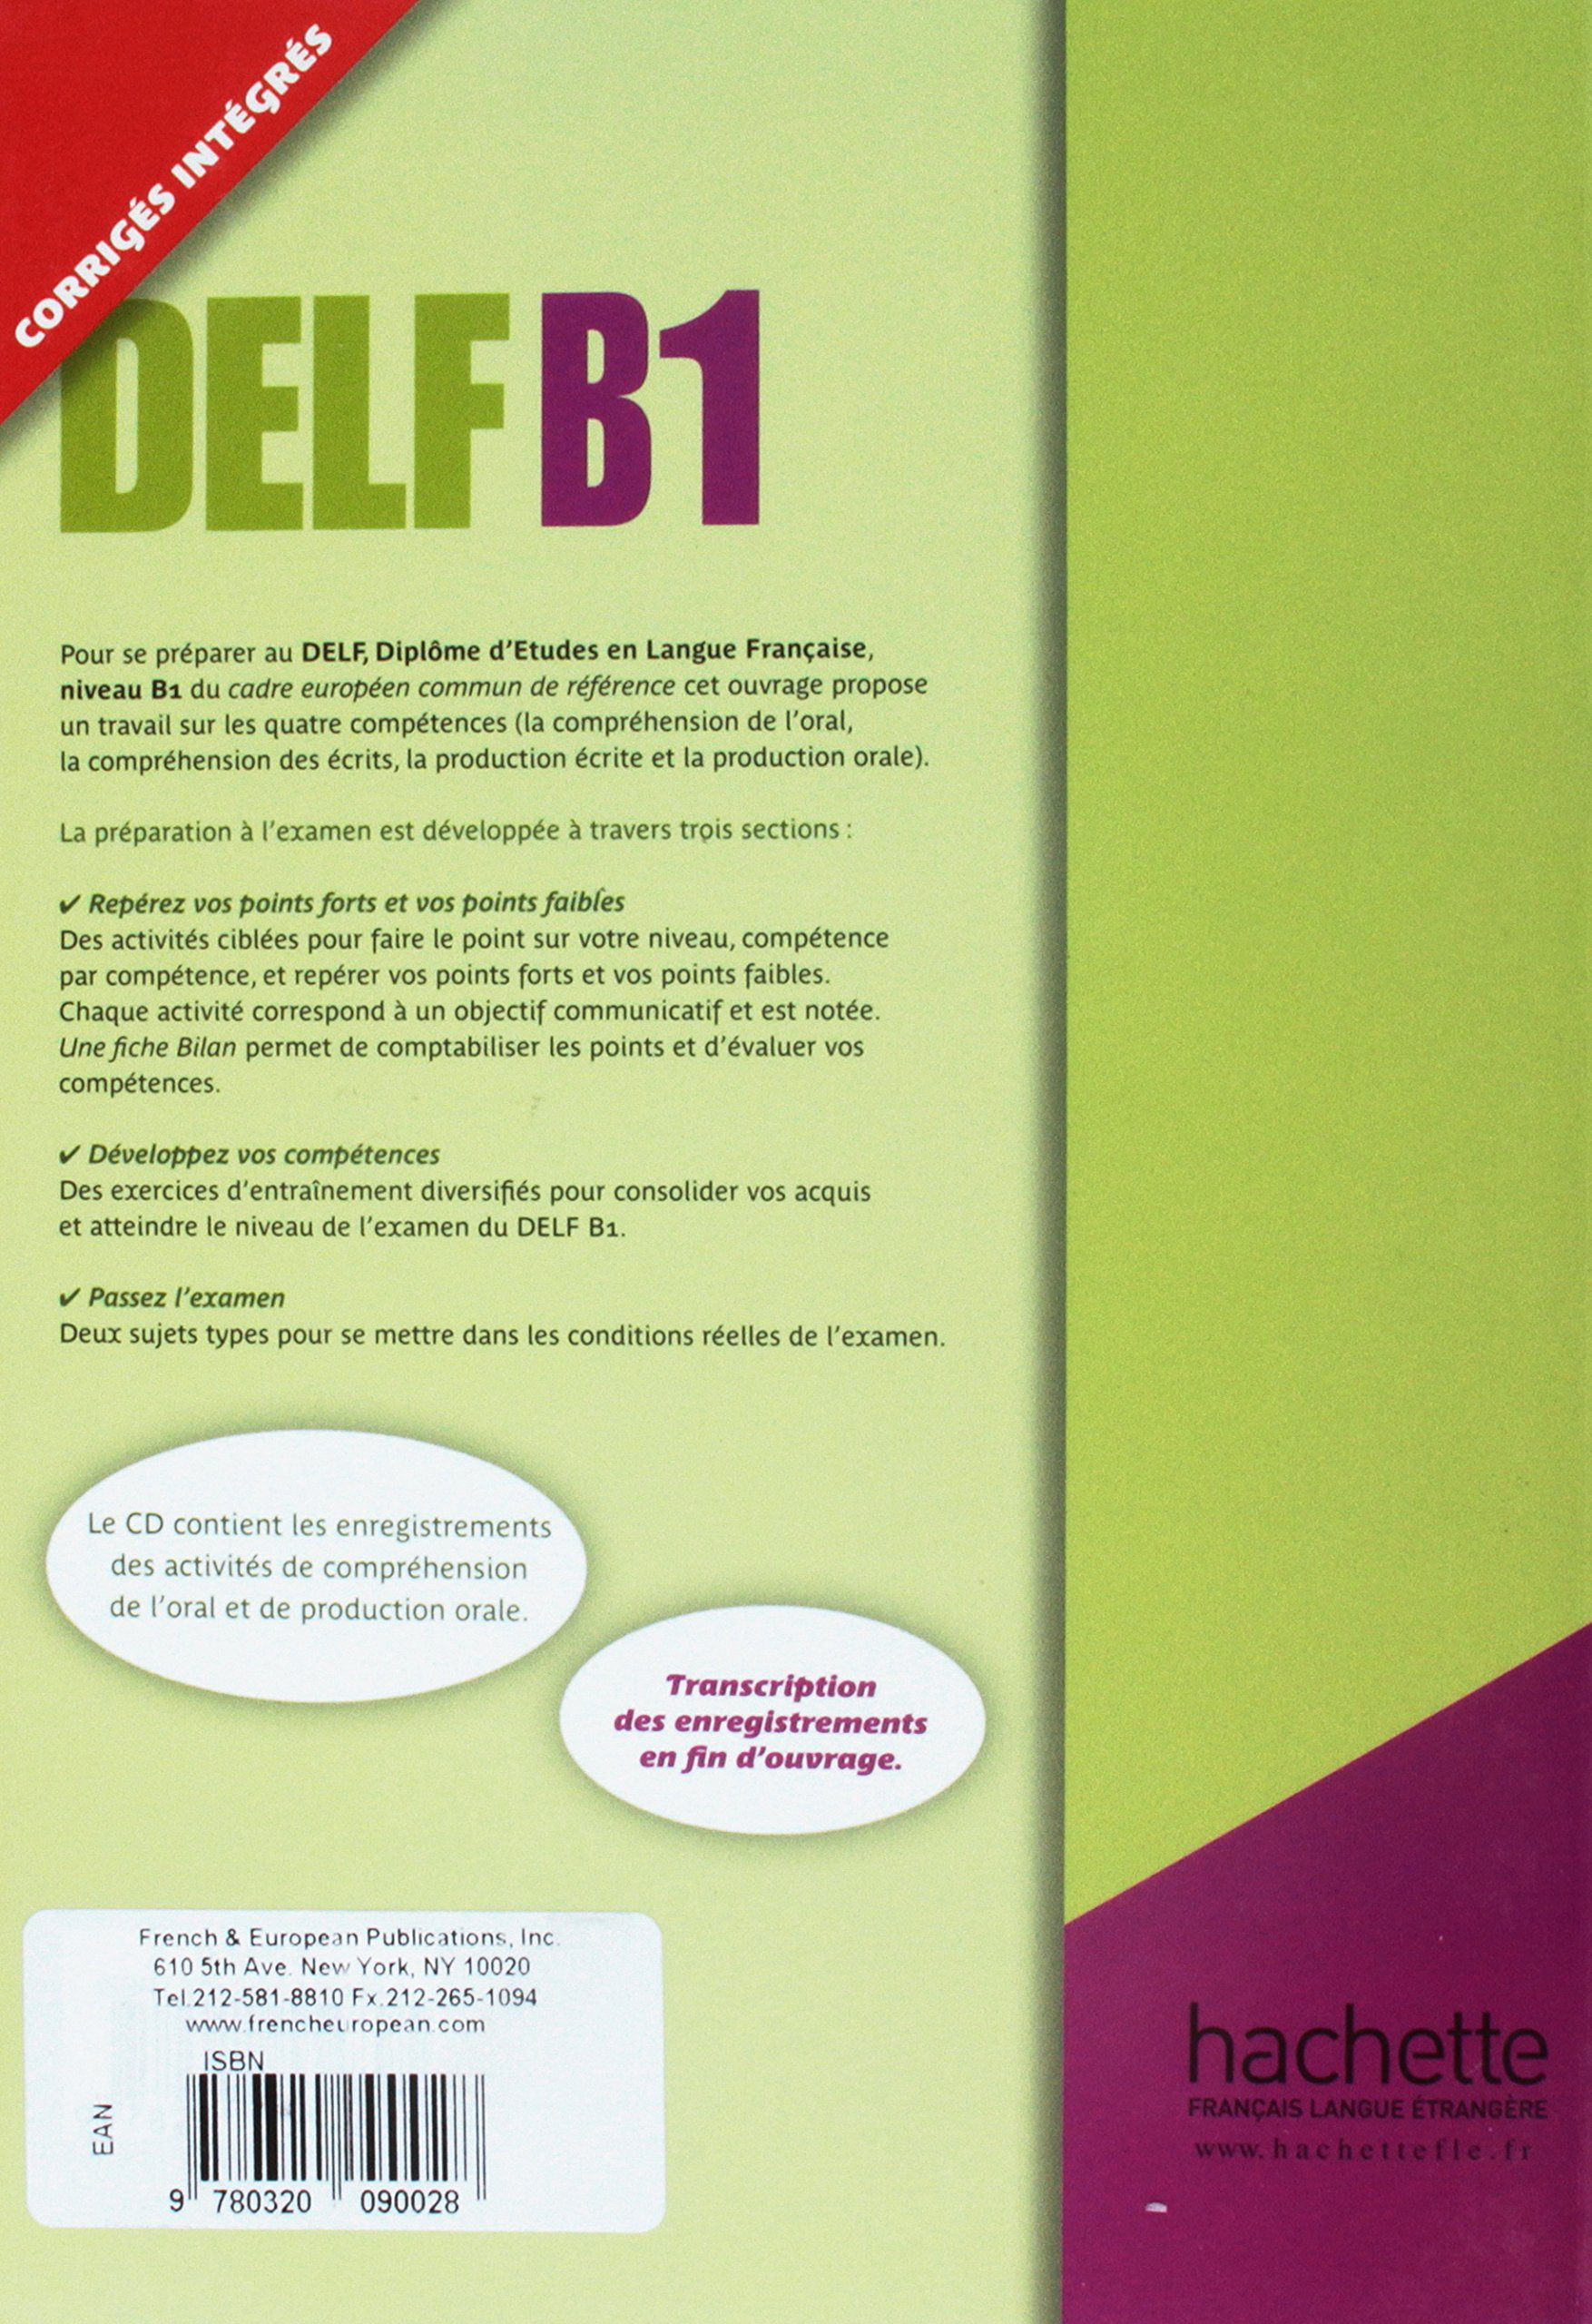 Preparation Examen Delf B1 plus CD audio (French Edition): Veltcheff: 9780320090028: Amazon.com: Books